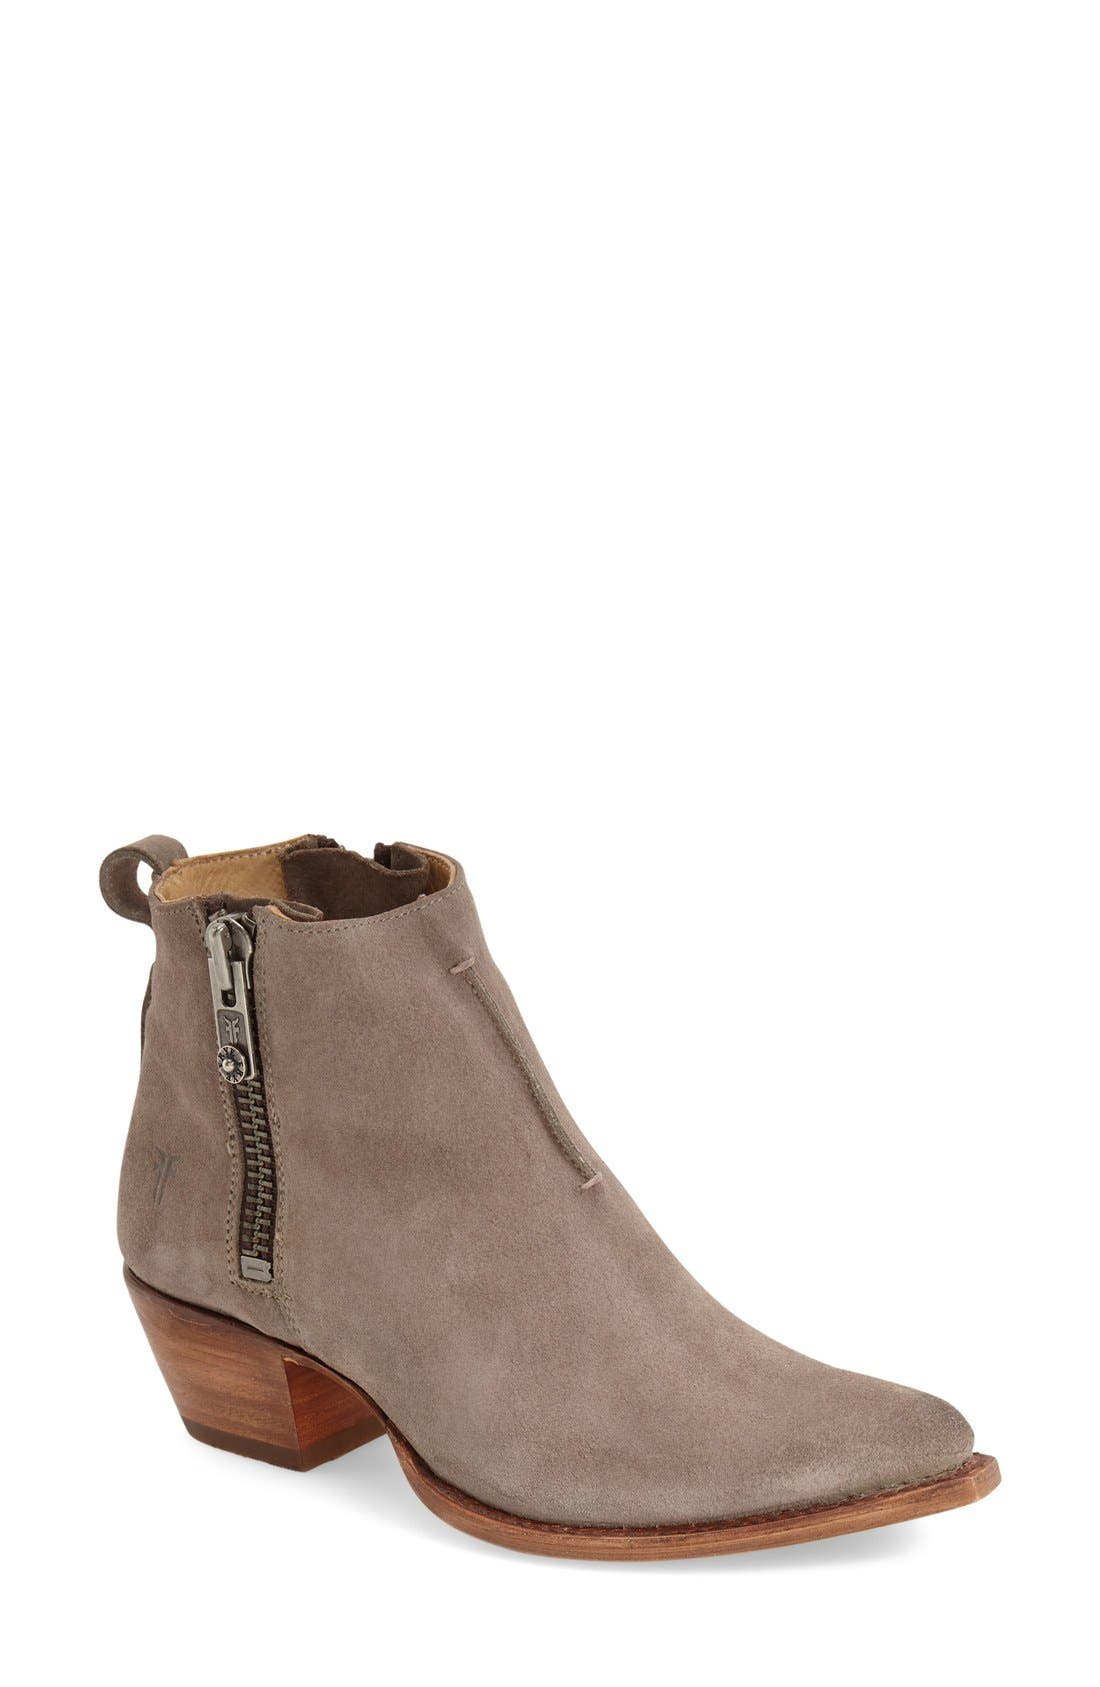 Alternate Image 1 Selected - Frye 'Sacha' Washed Leather Ankle Boot (Women)